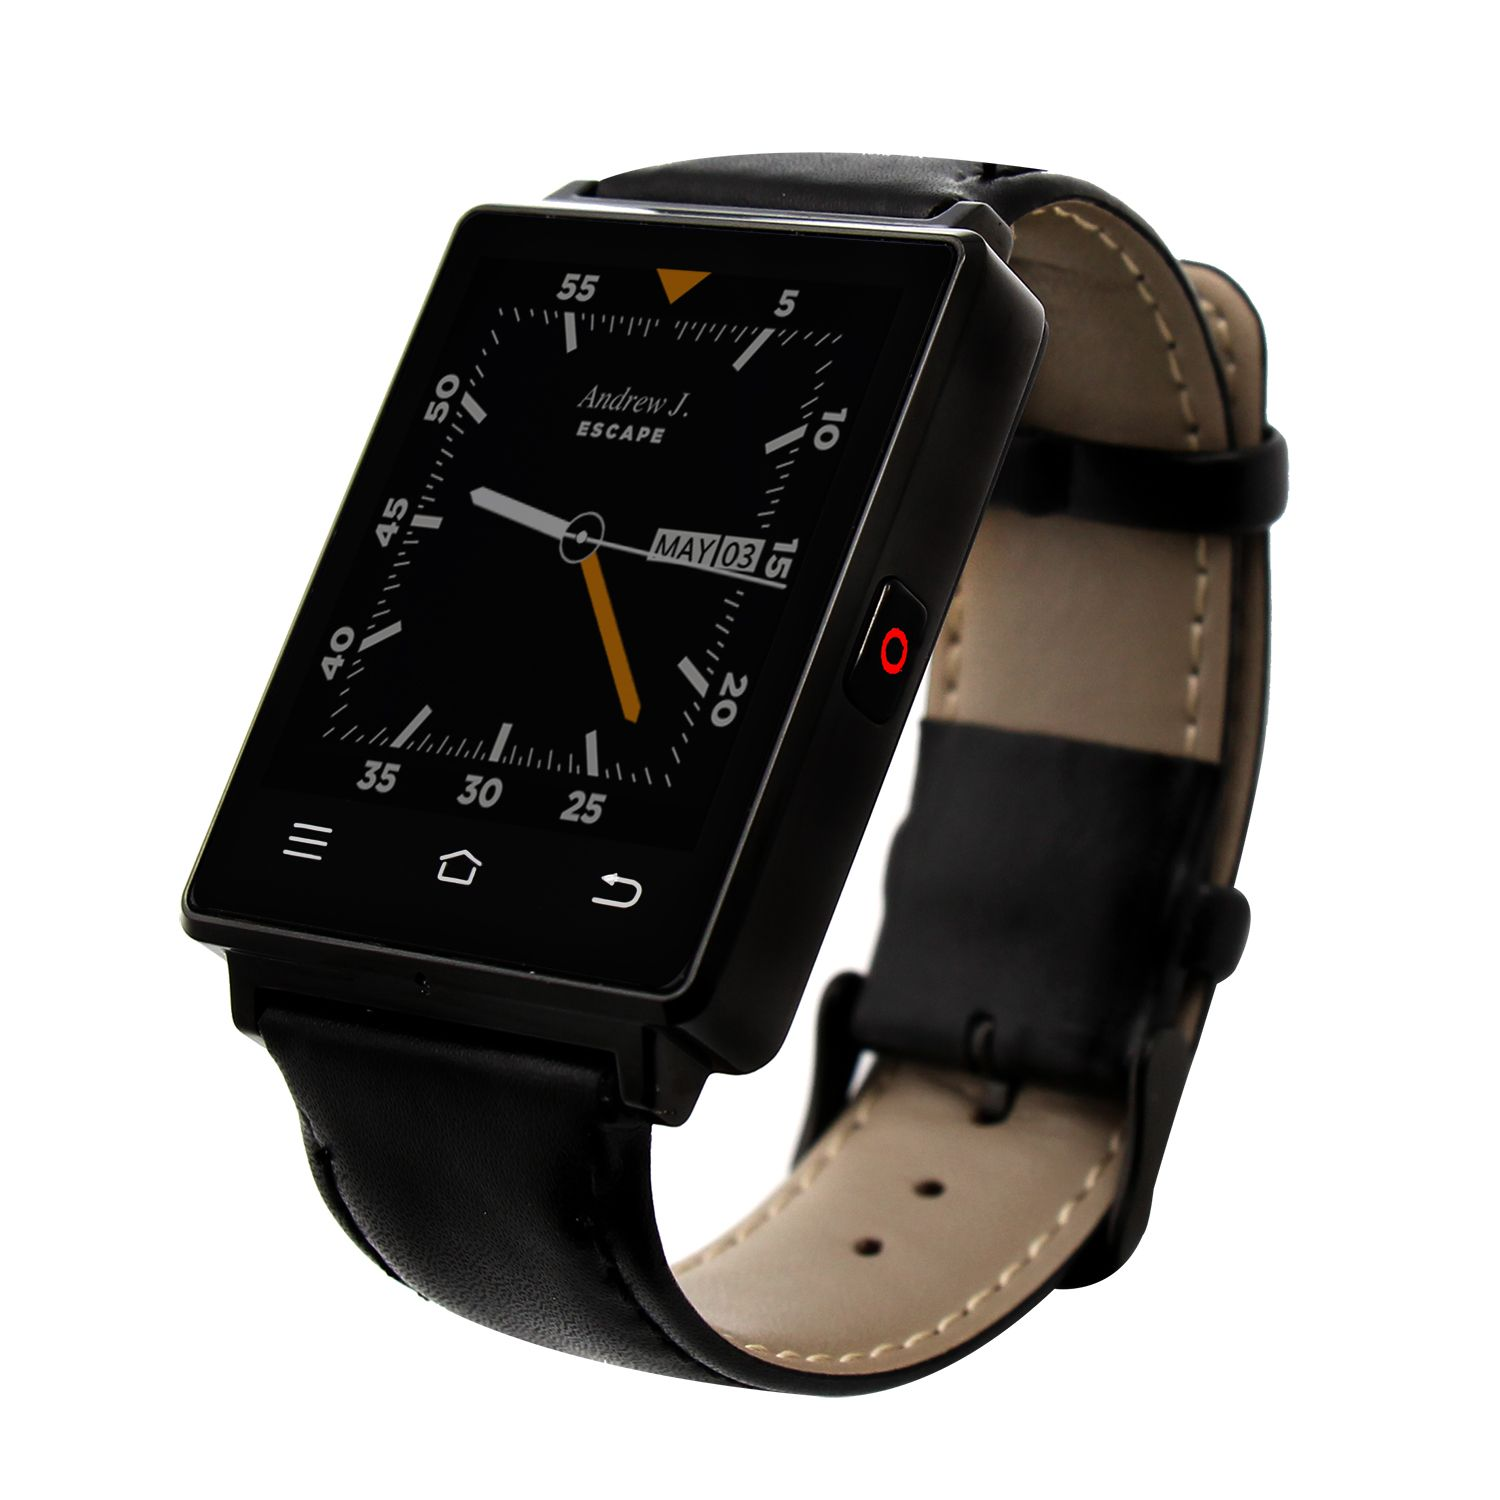 D6 Bluetooth smart watch with SIM Card slot for Iphone and